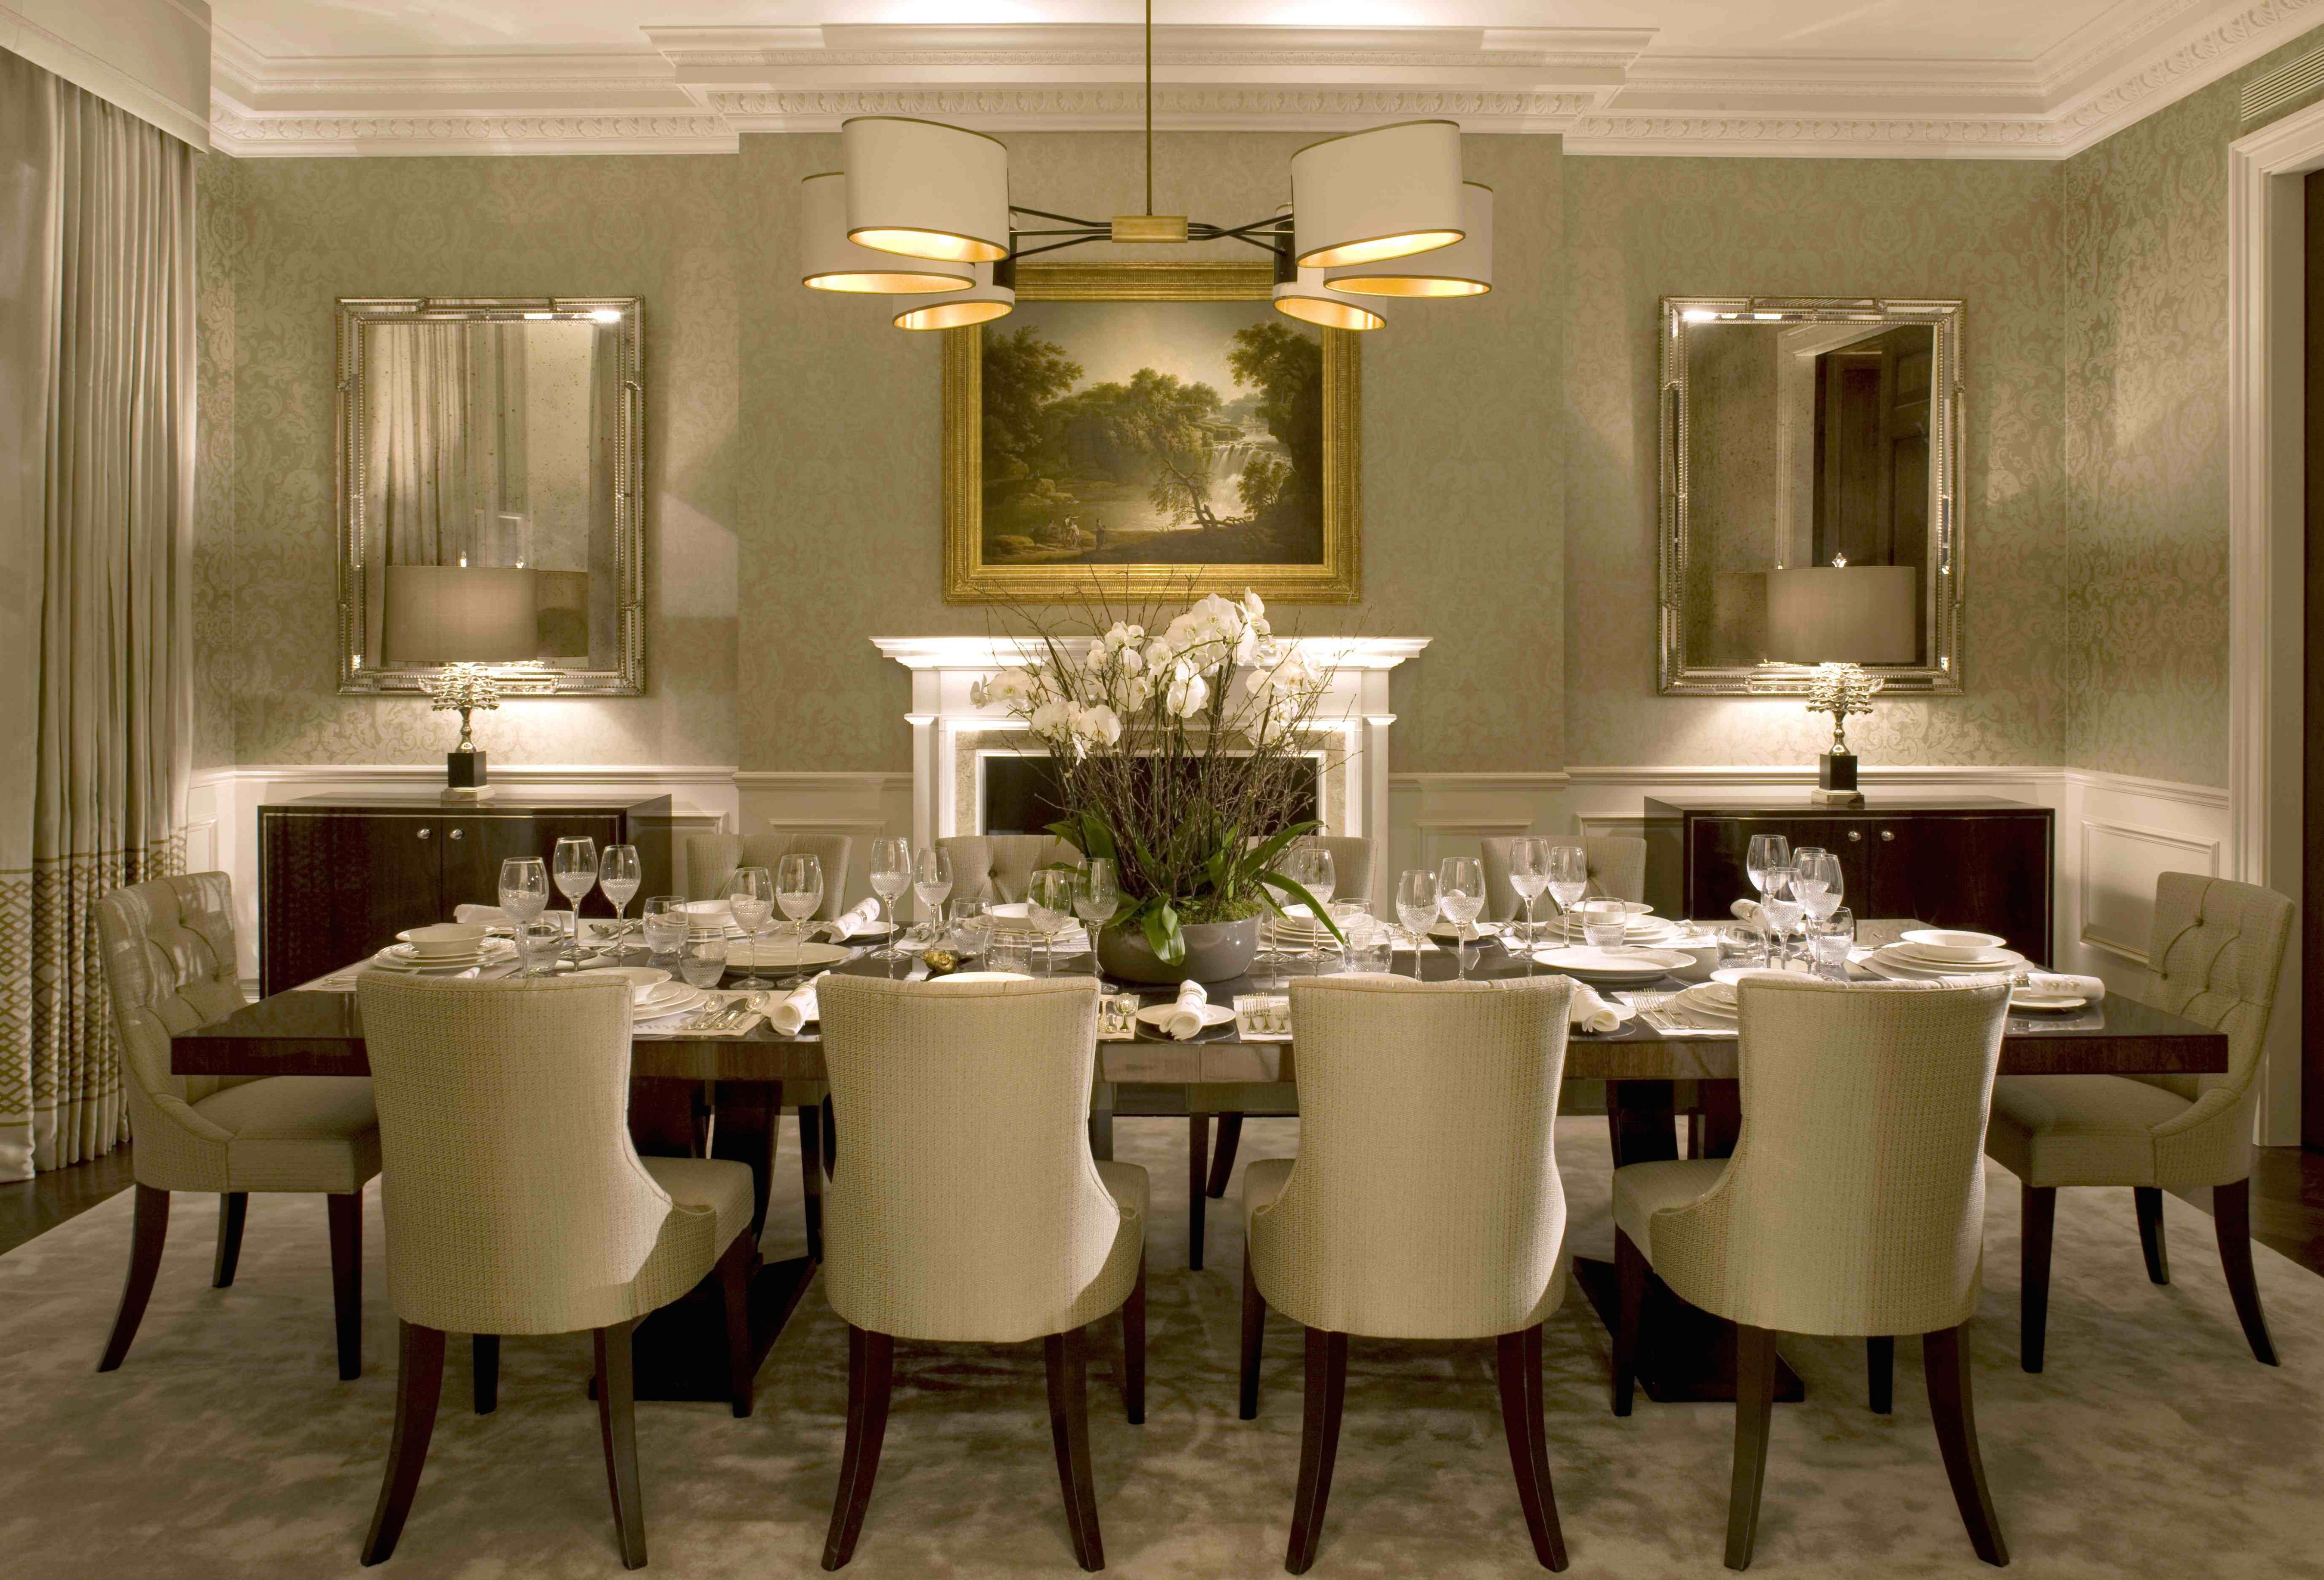 Alluring Formal Dining Room Ideas Your Residence Idea Small Formal Dining Room Decorating Dining Room Table Centerpieces Modern Dining Room Luxury Dining Room